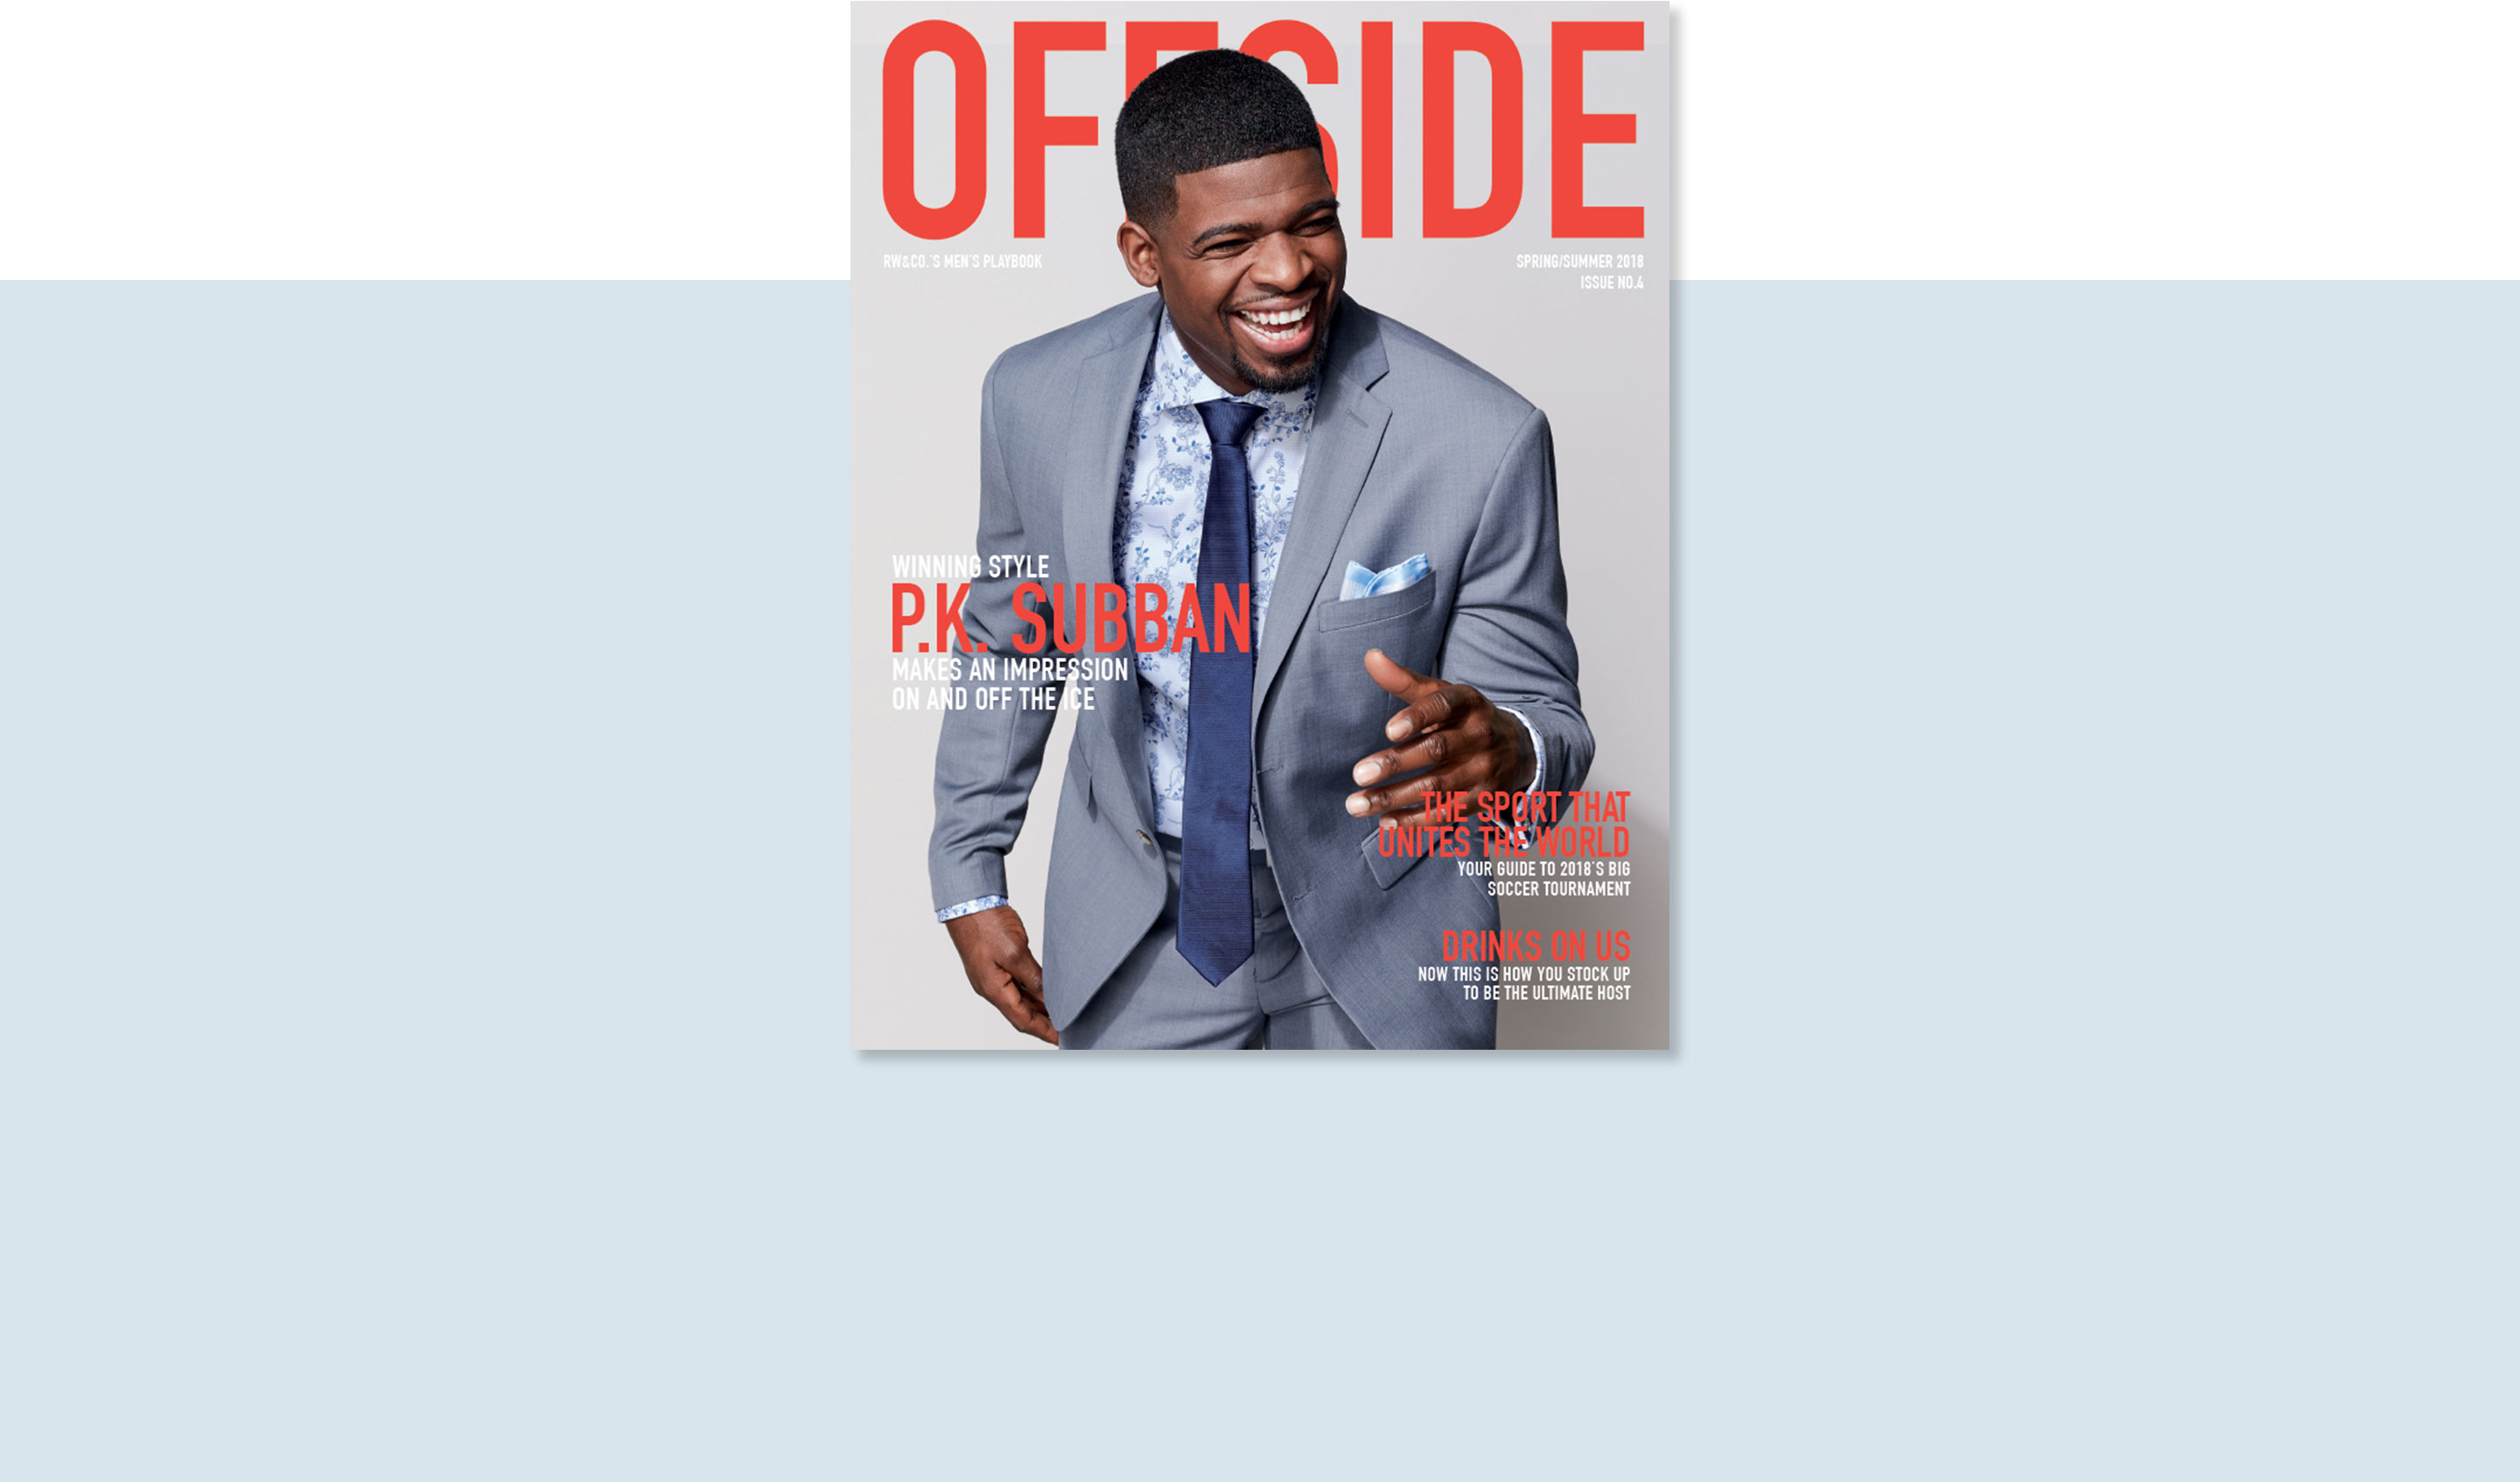 Cover of the Offside magazine with PK Subban